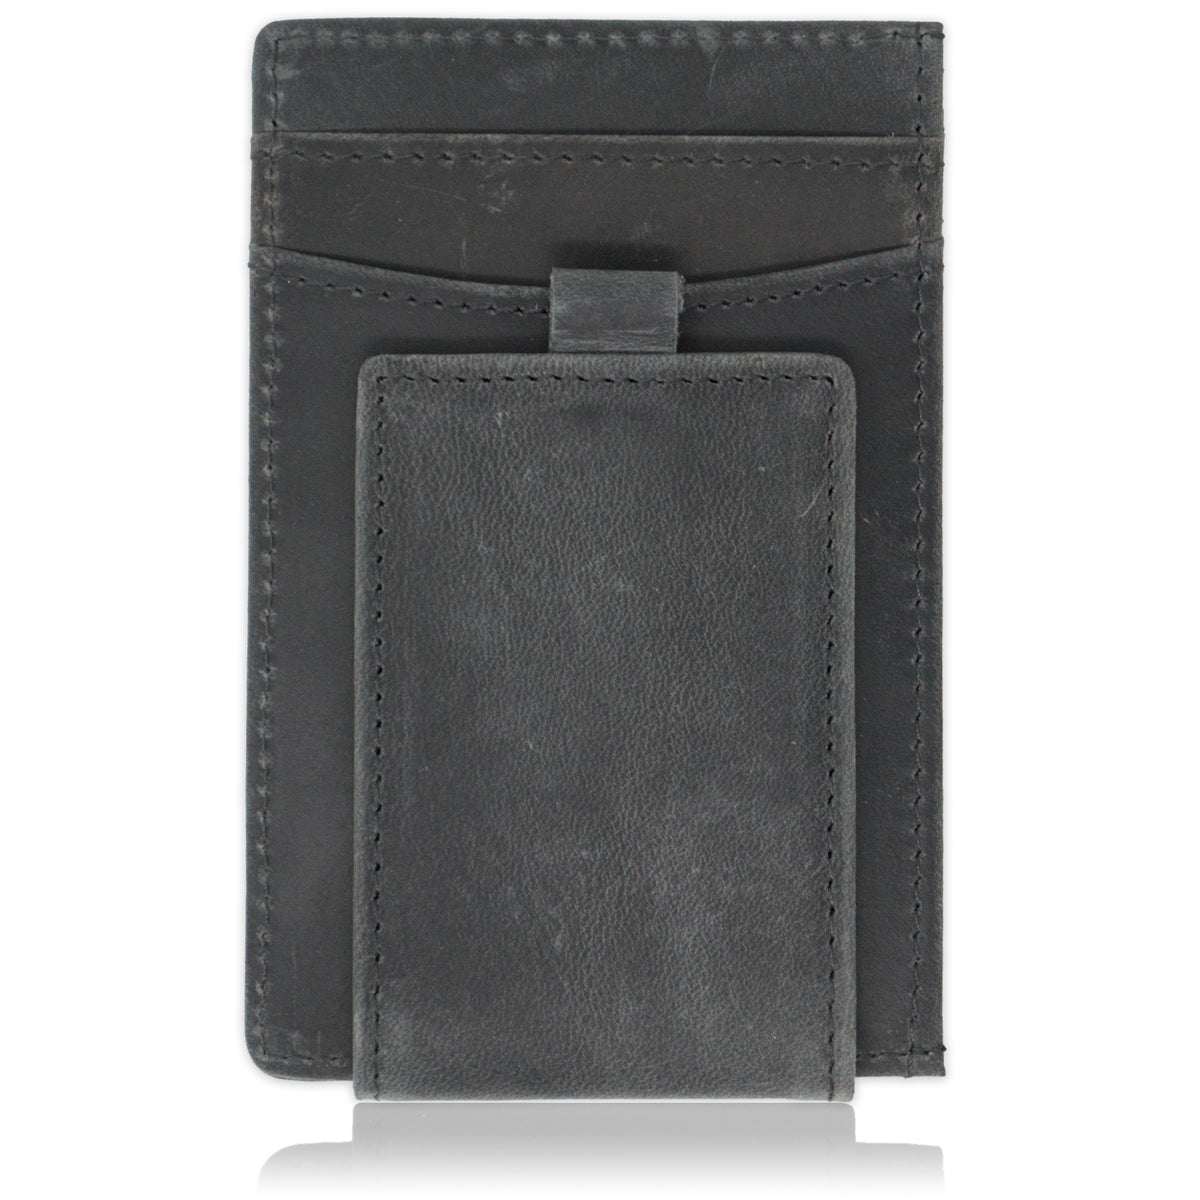 MAVERICK - Distressed Gray Crazy Horse Leather